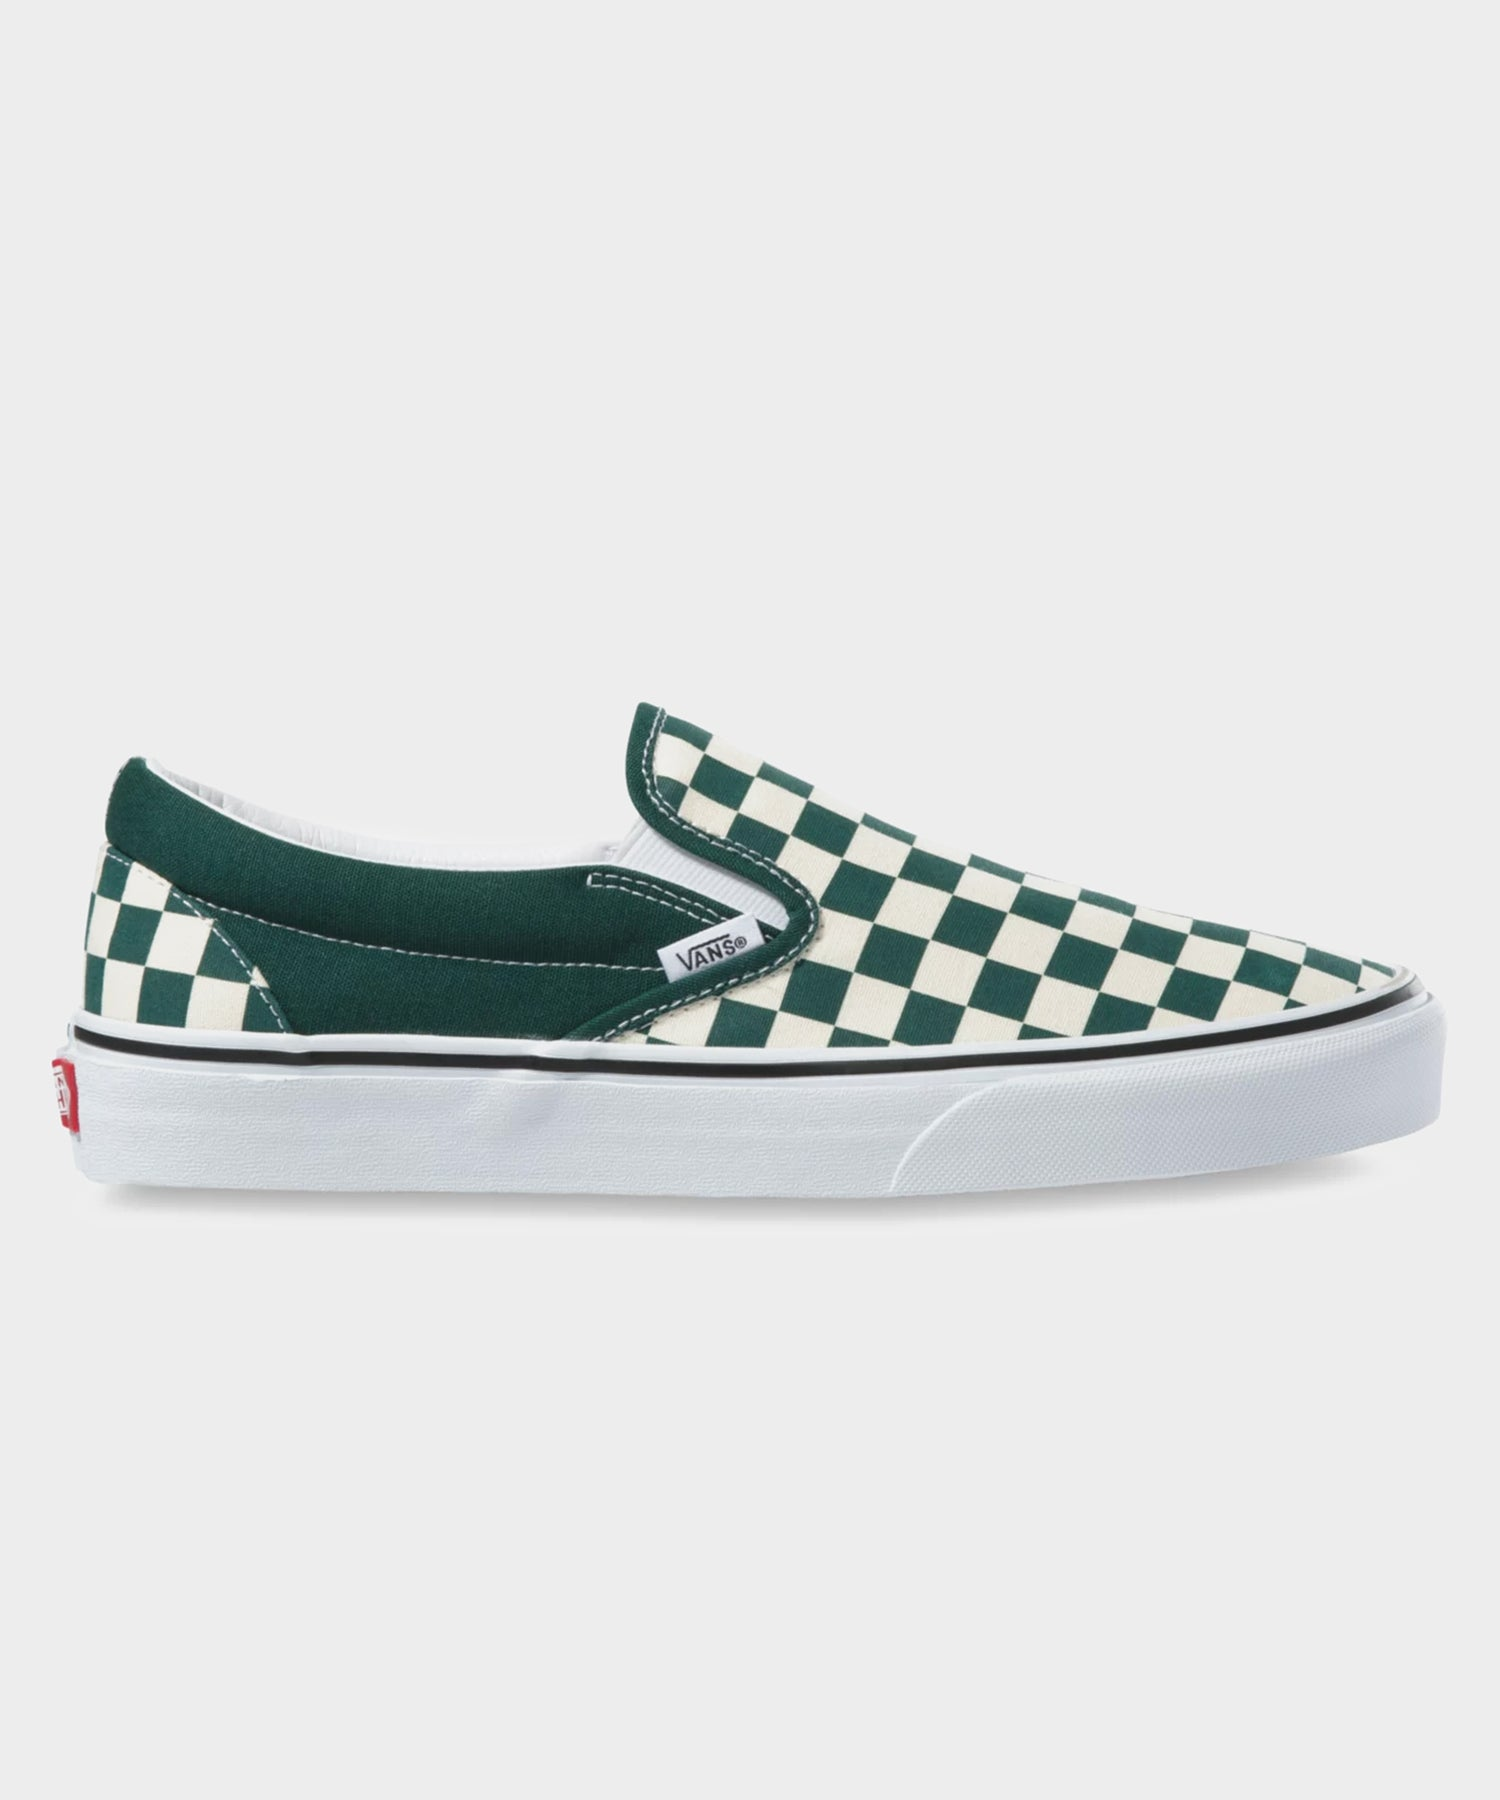 Vans Checkerboard Classic Slip-On in Green